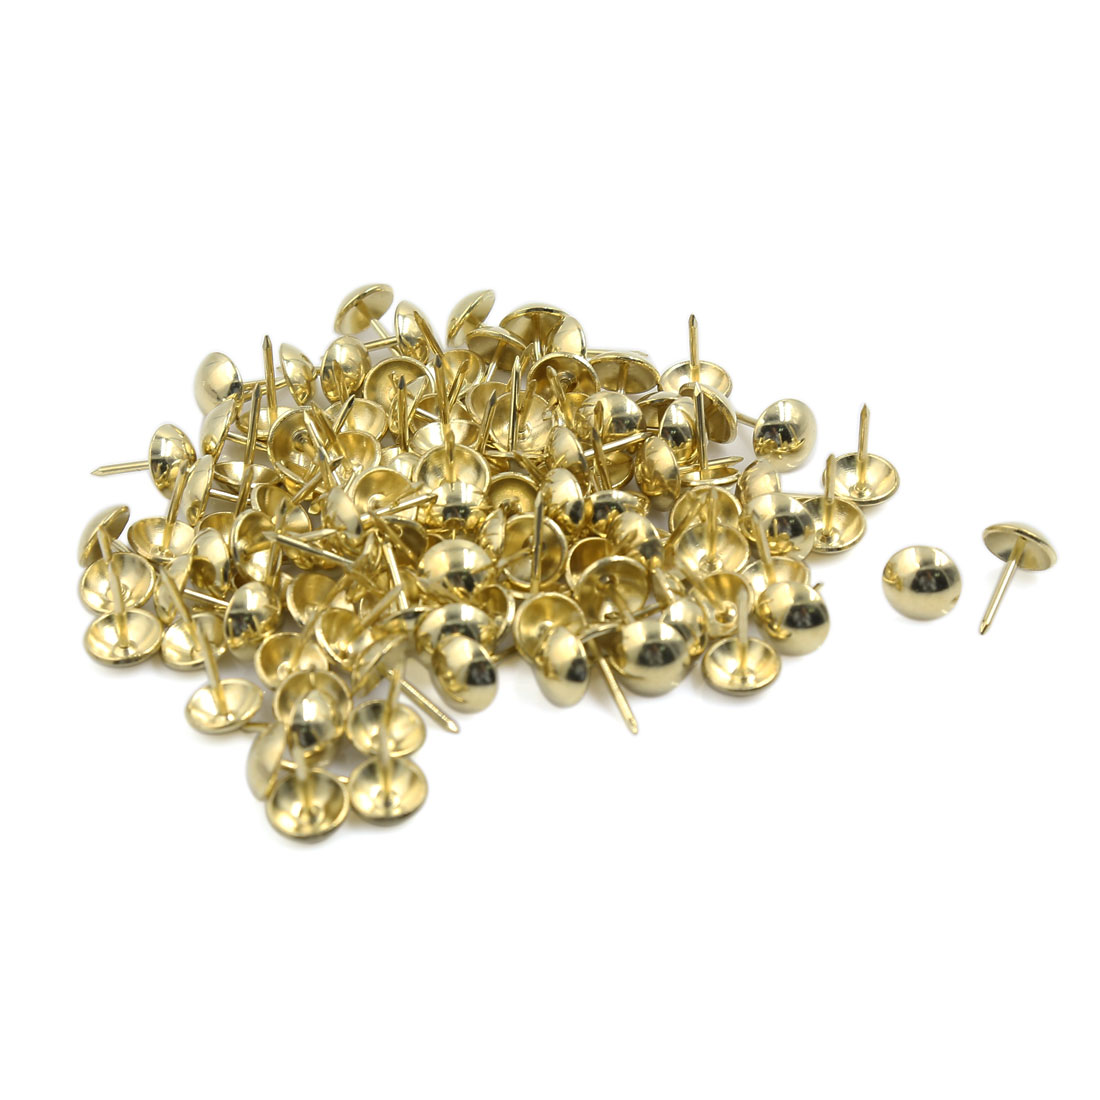 Corkboards Message Boards Round Top Wall-Mounted Thumb Tacks Gold Tone 100pcs